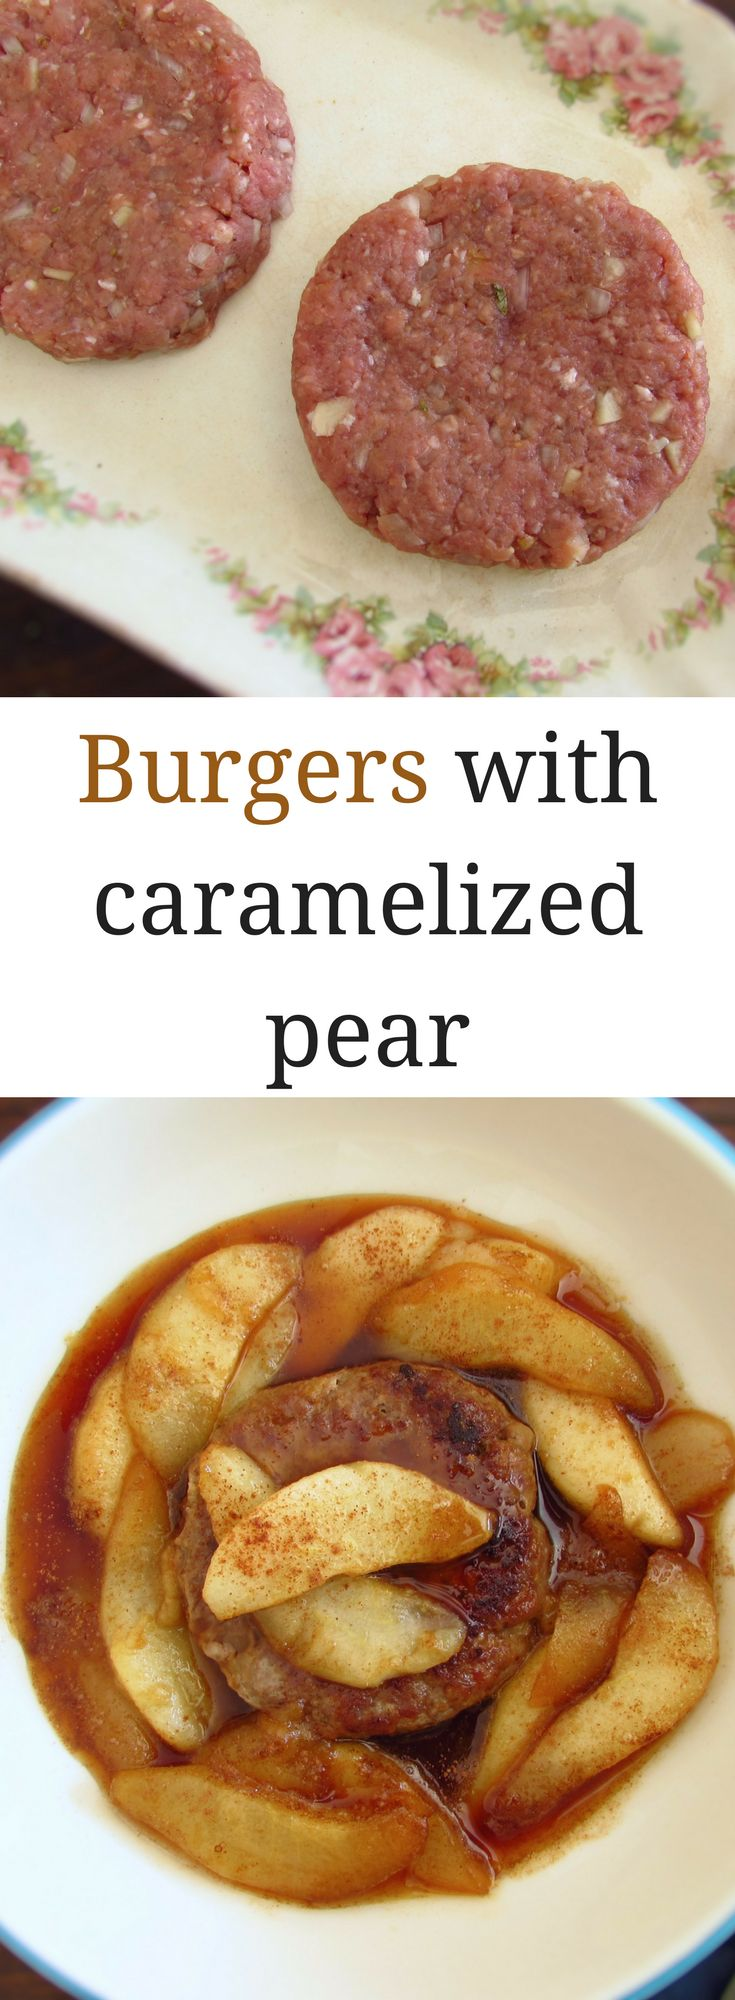 Burgers with caramelized pear | Food From Portugal. Want to prepare a special dinner for your friends? Serve these tasty burgers with caramelized pear! They will love this delicious blend of flavours. Bon appetit!!! #burgers #recipe #pear